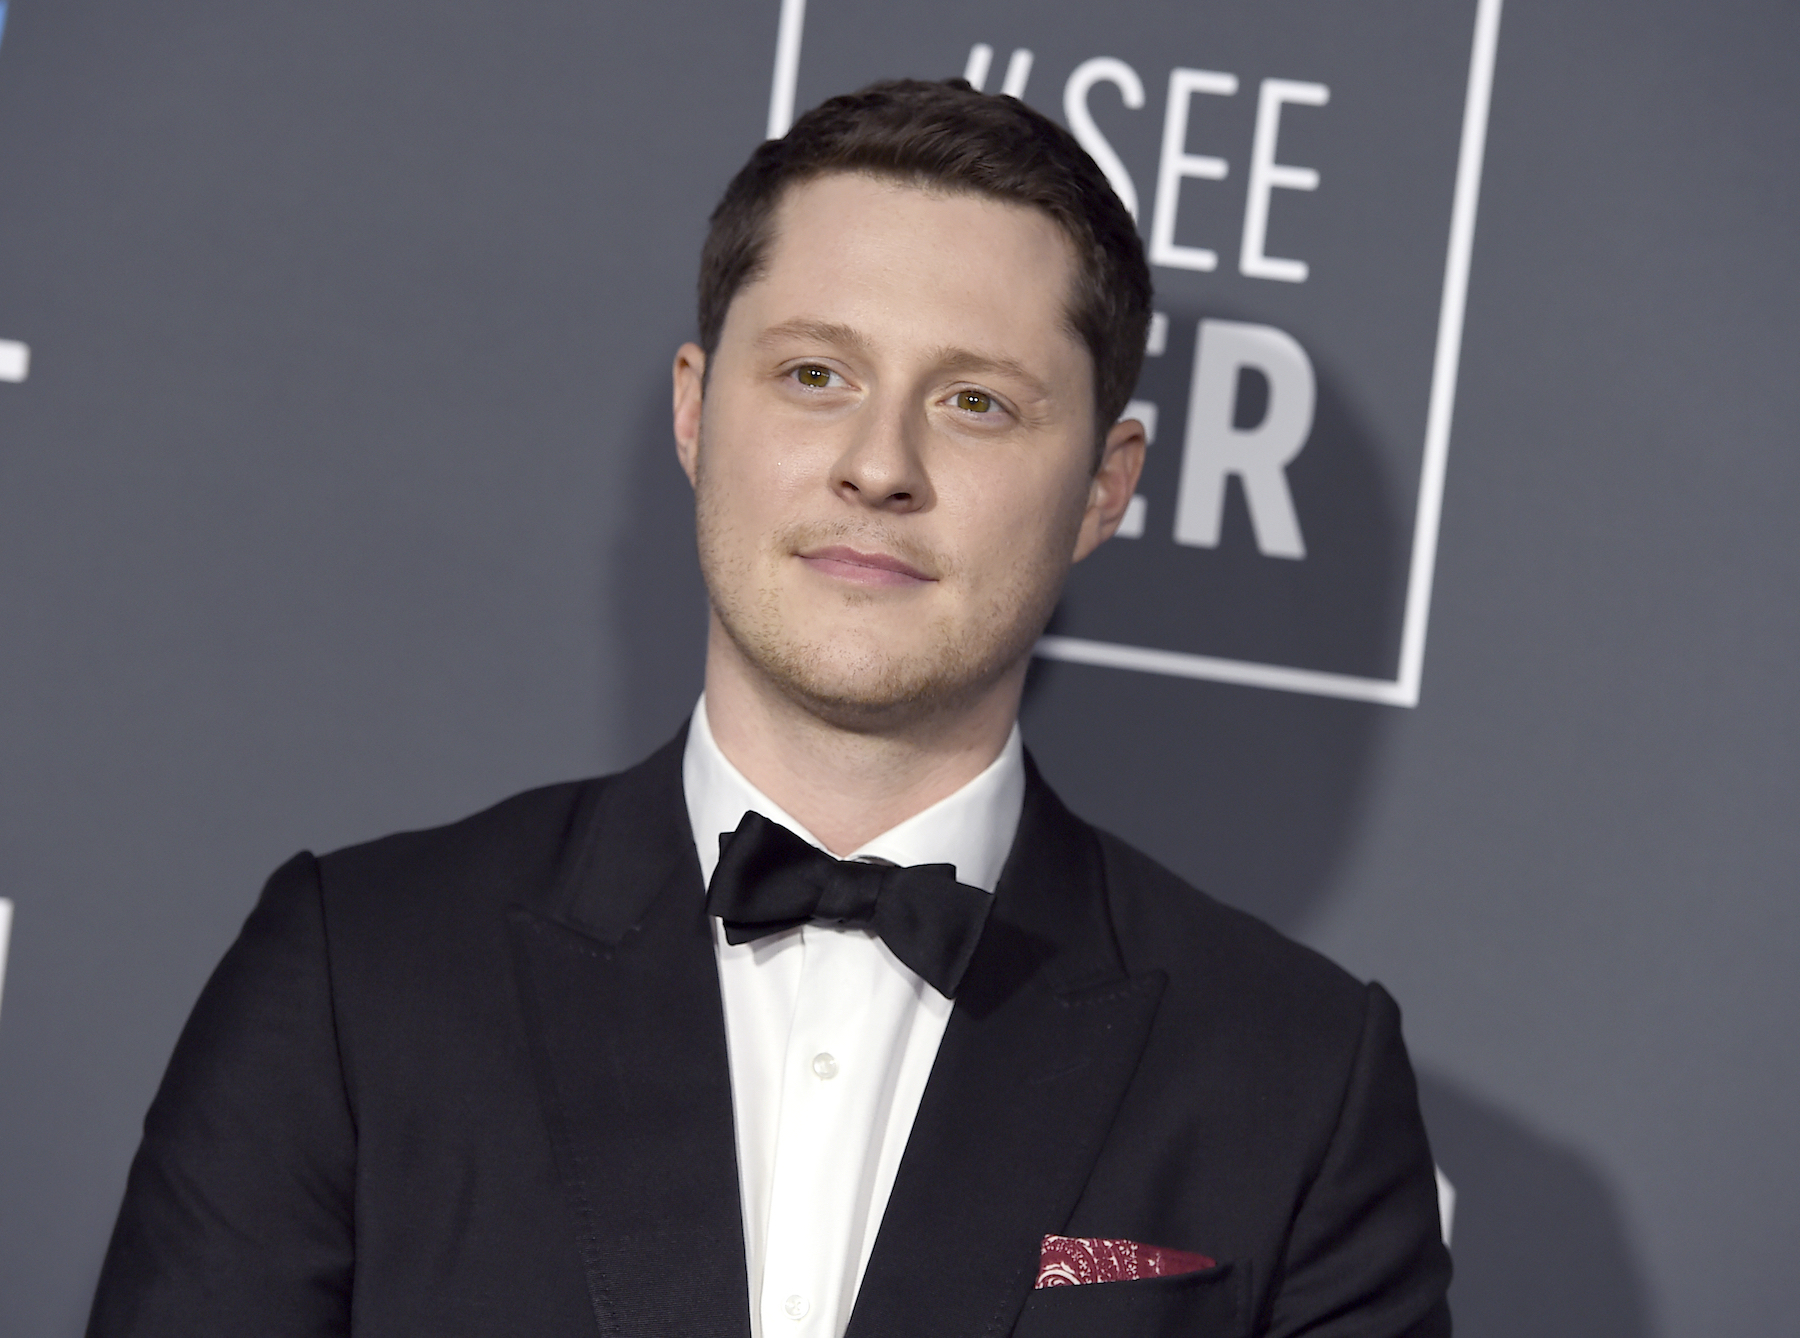 <div class='meta'><div class='origin-logo' data-origin='AP'></div><span class='caption-text' data-credit='Jordan Strauss/Invision/AP'>Noah Reid arrives at the 24th annual Critics' Choice Awards on Sunday, Jan. 13, 2019, at the Barker Hangar in Santa Monica, Calif.</span></div>